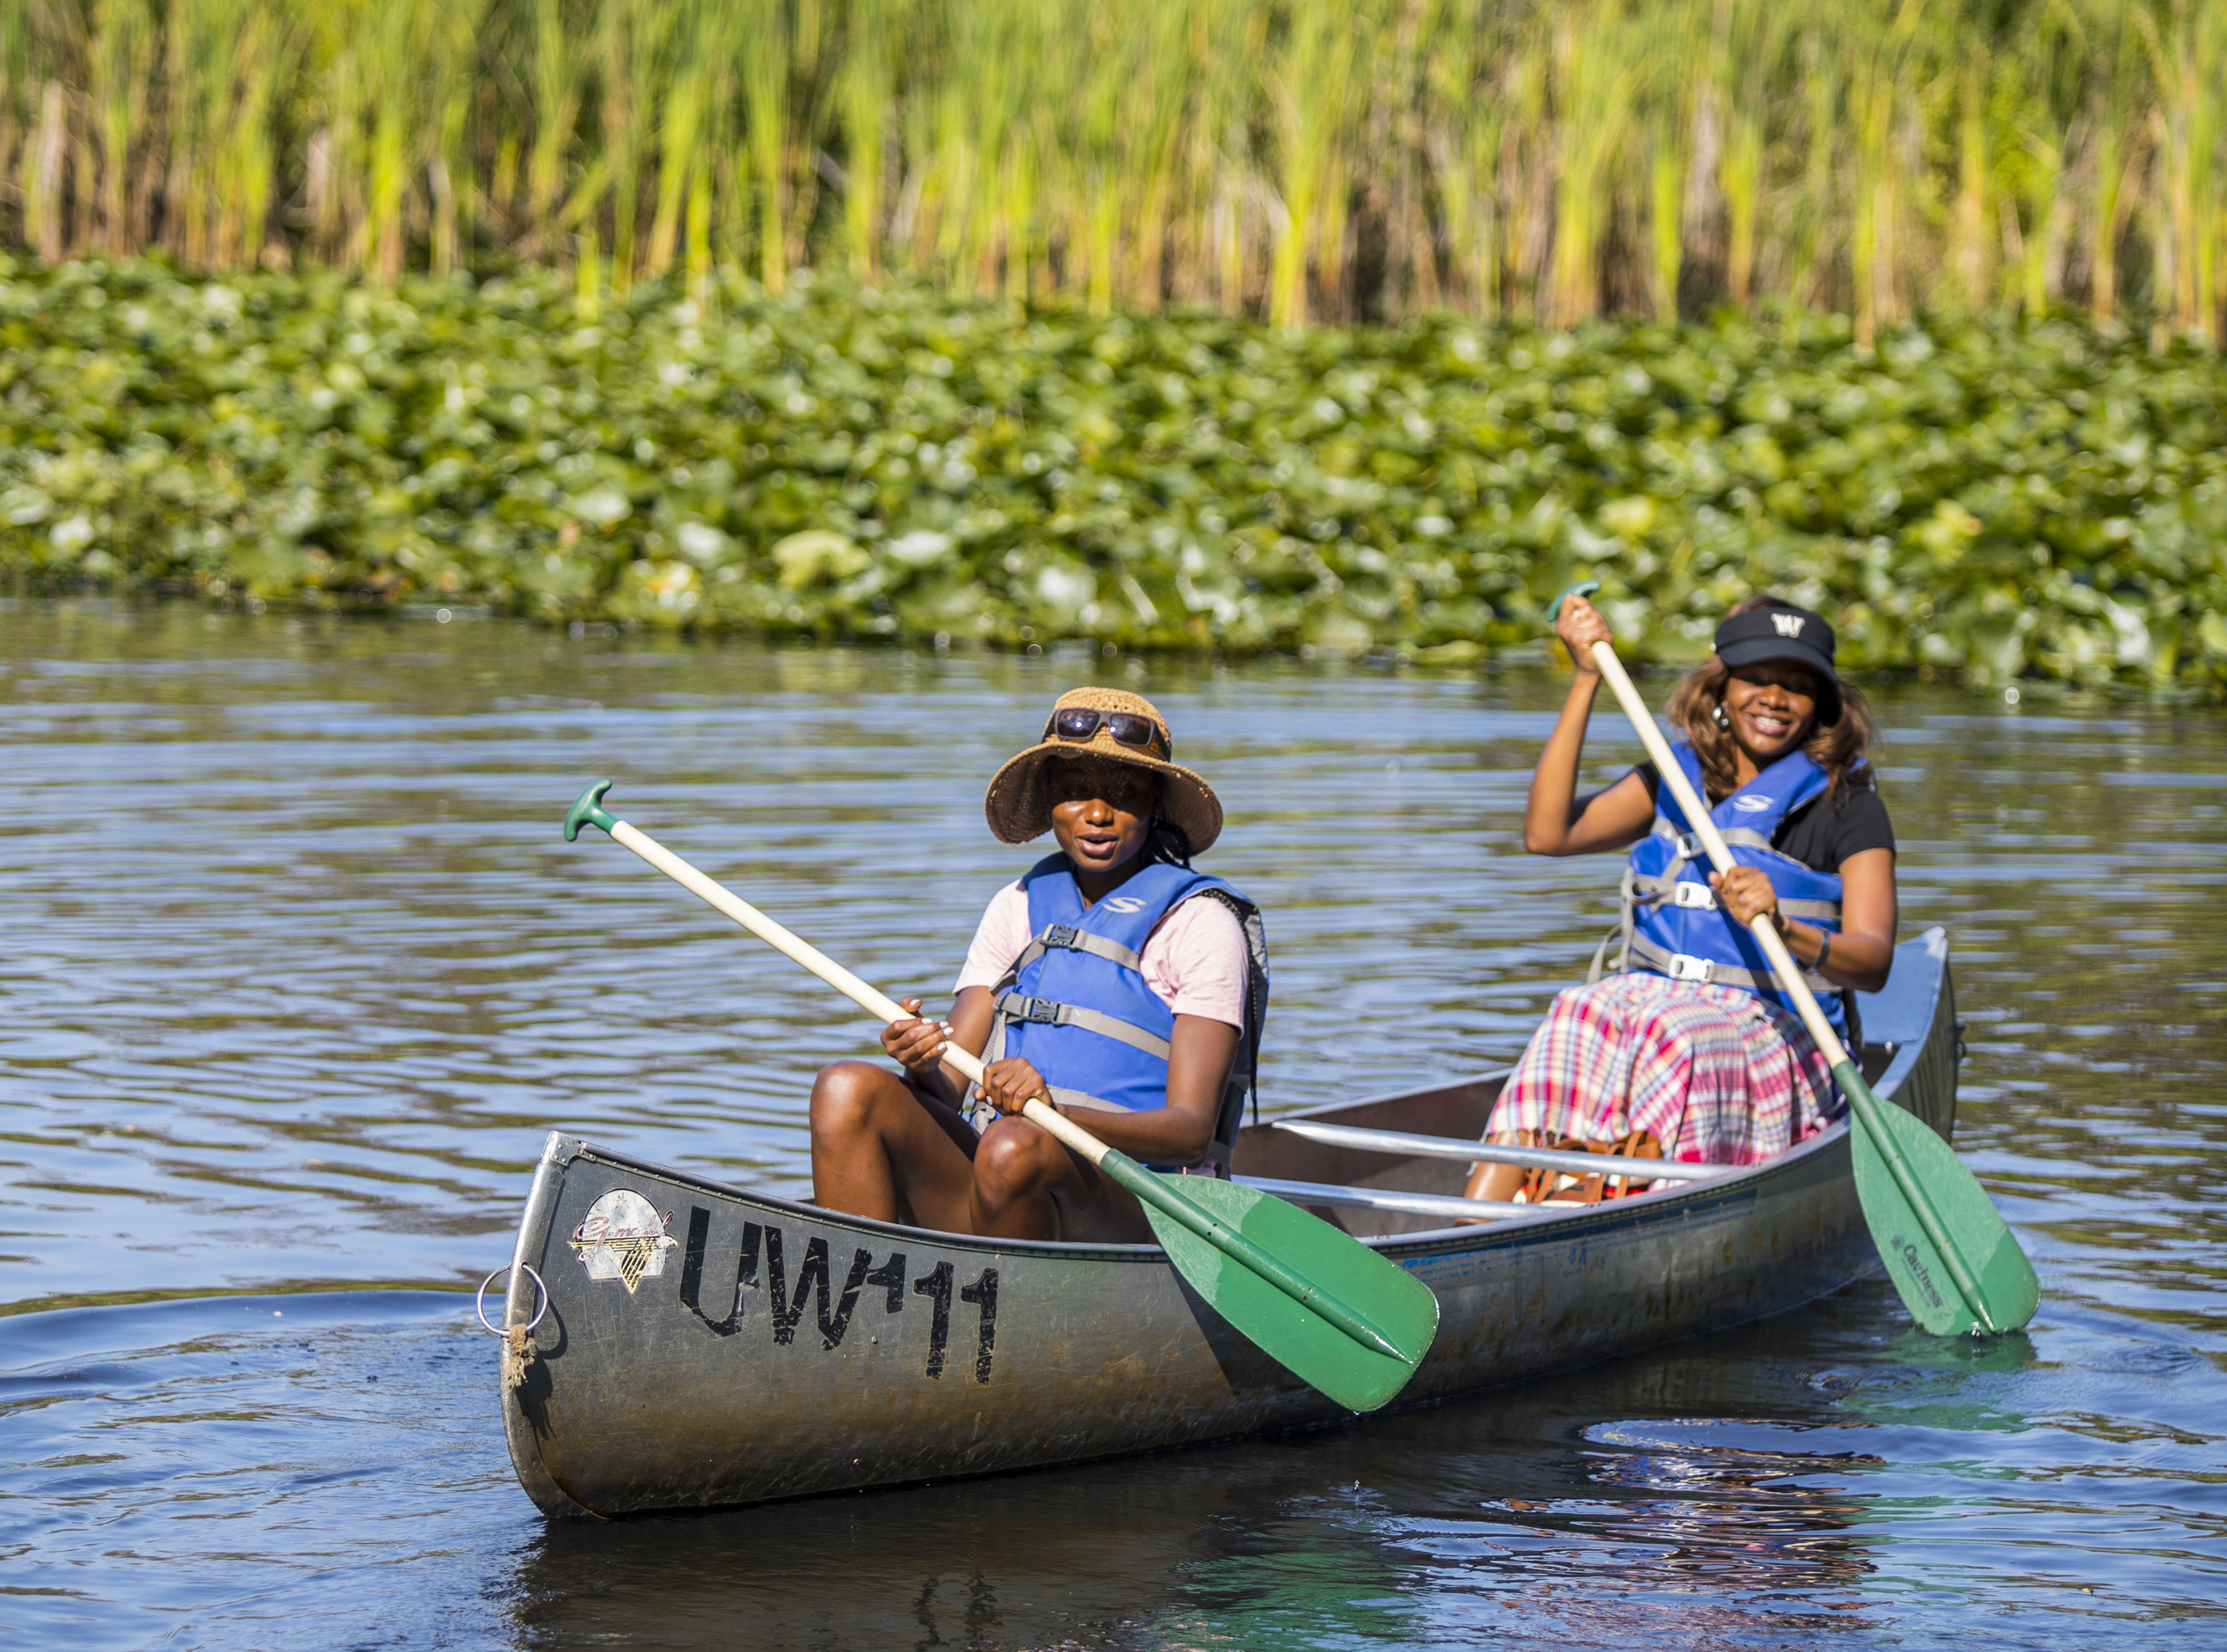 The Unforgettable Moment Lies in Airboat Rides Everglades